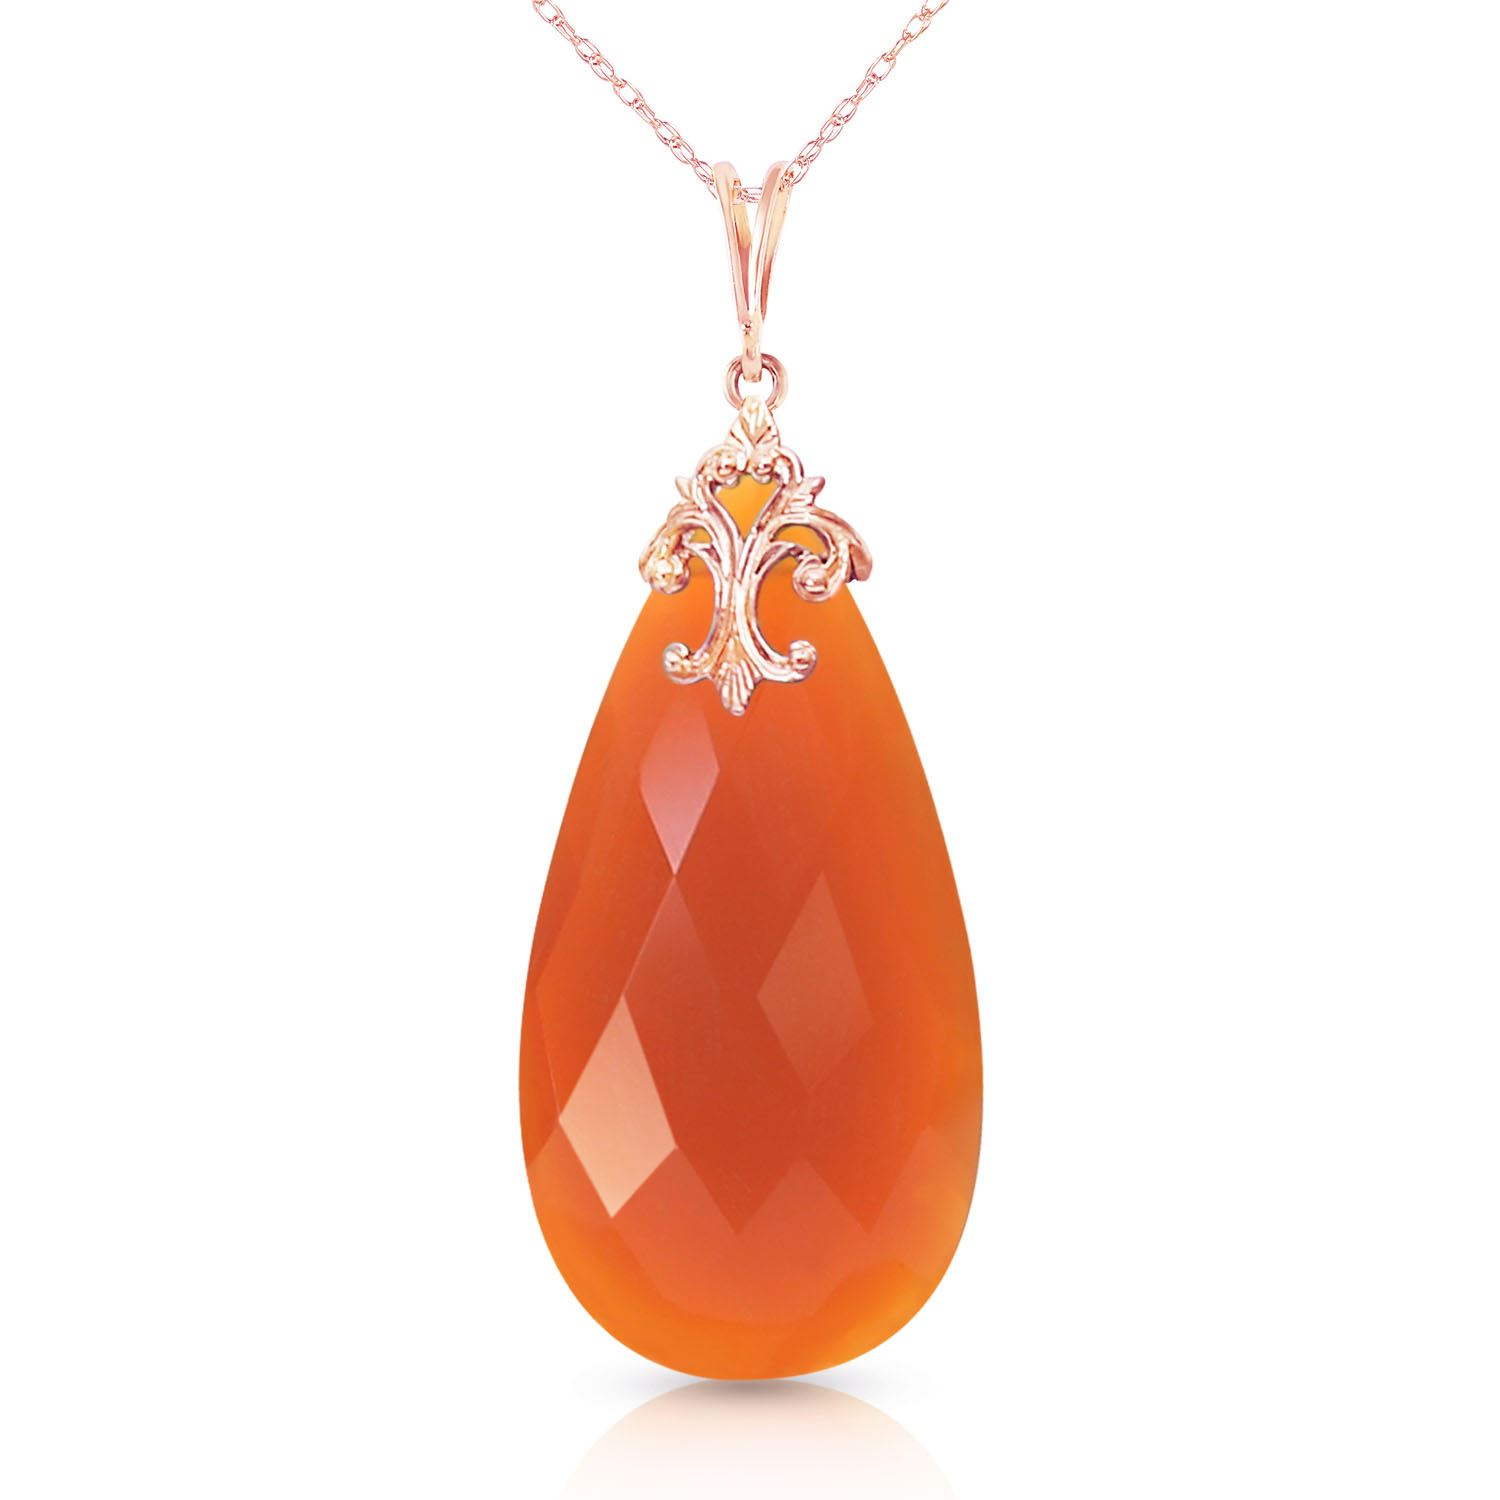 ALARRI 14K Solid Rose Gold Necklace with Briolette 31x16 mm Reddish Orange Chalcedony with 22 Inch Chain Length. by ALARRI